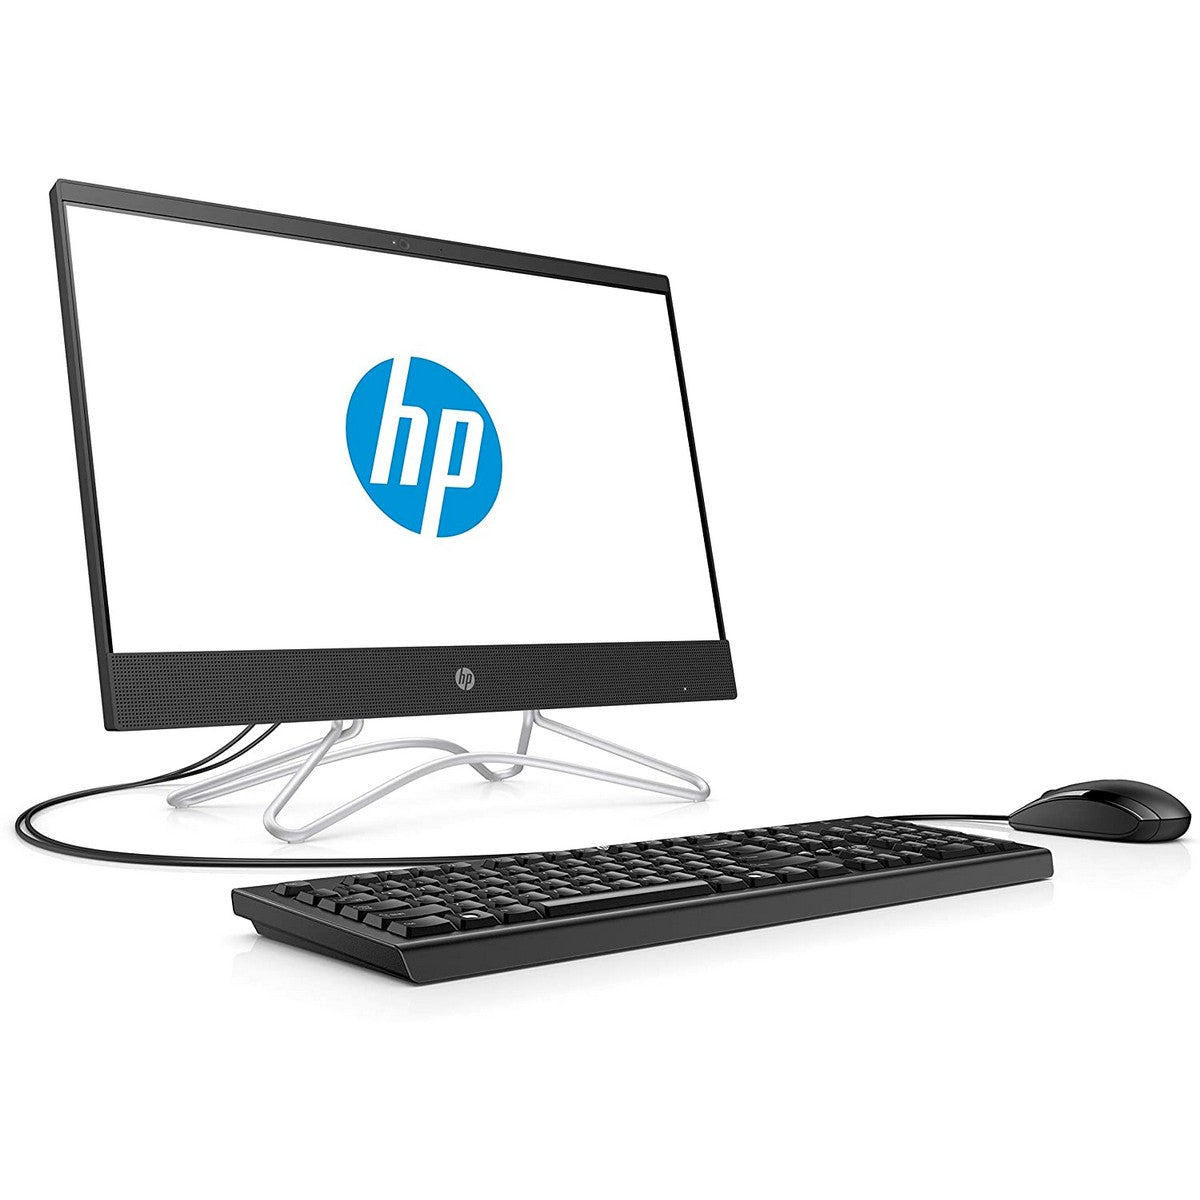 HP 200 G3 All-in-One Desktop 21.5'' FHD , Intel Core i3 i3-8130 2.20GHz 4M Cache, up to 3.40GHz, 4GB RAM, Intel UHD 620 GPU, 1TB HDD, Windows 10 Pro, Black